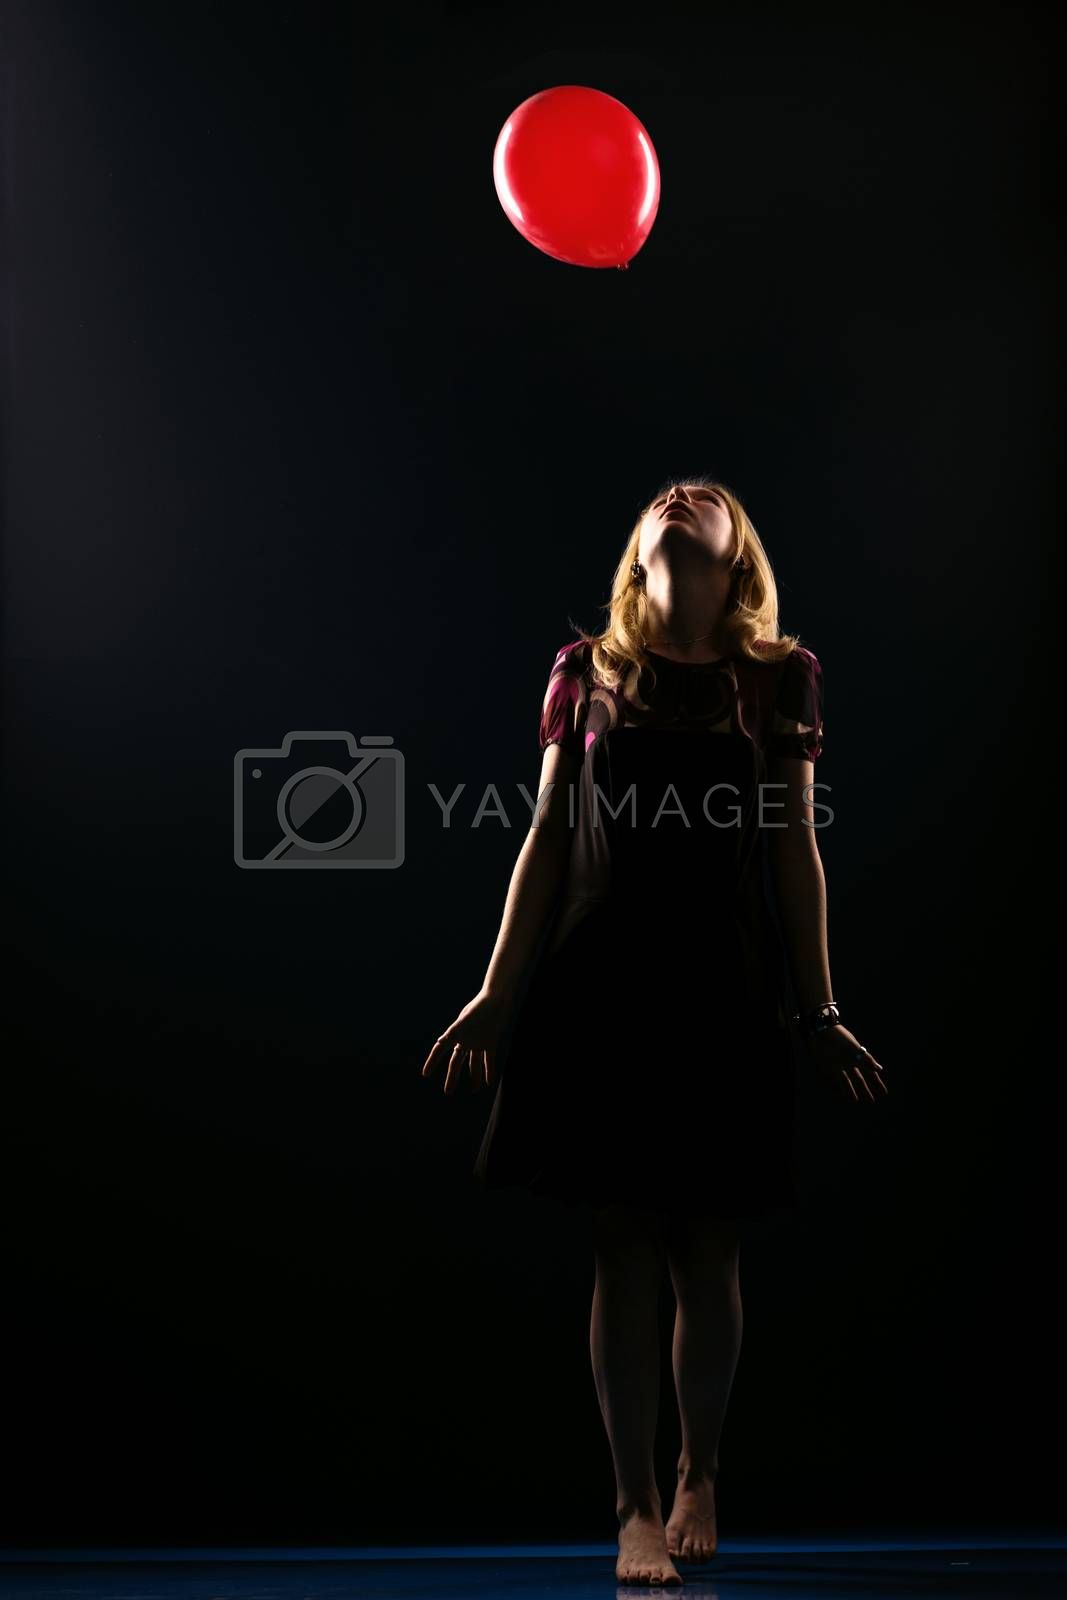 Concept: dream, sadness, hope. Barefoot girl reaching for the flying balloon isolated on black background